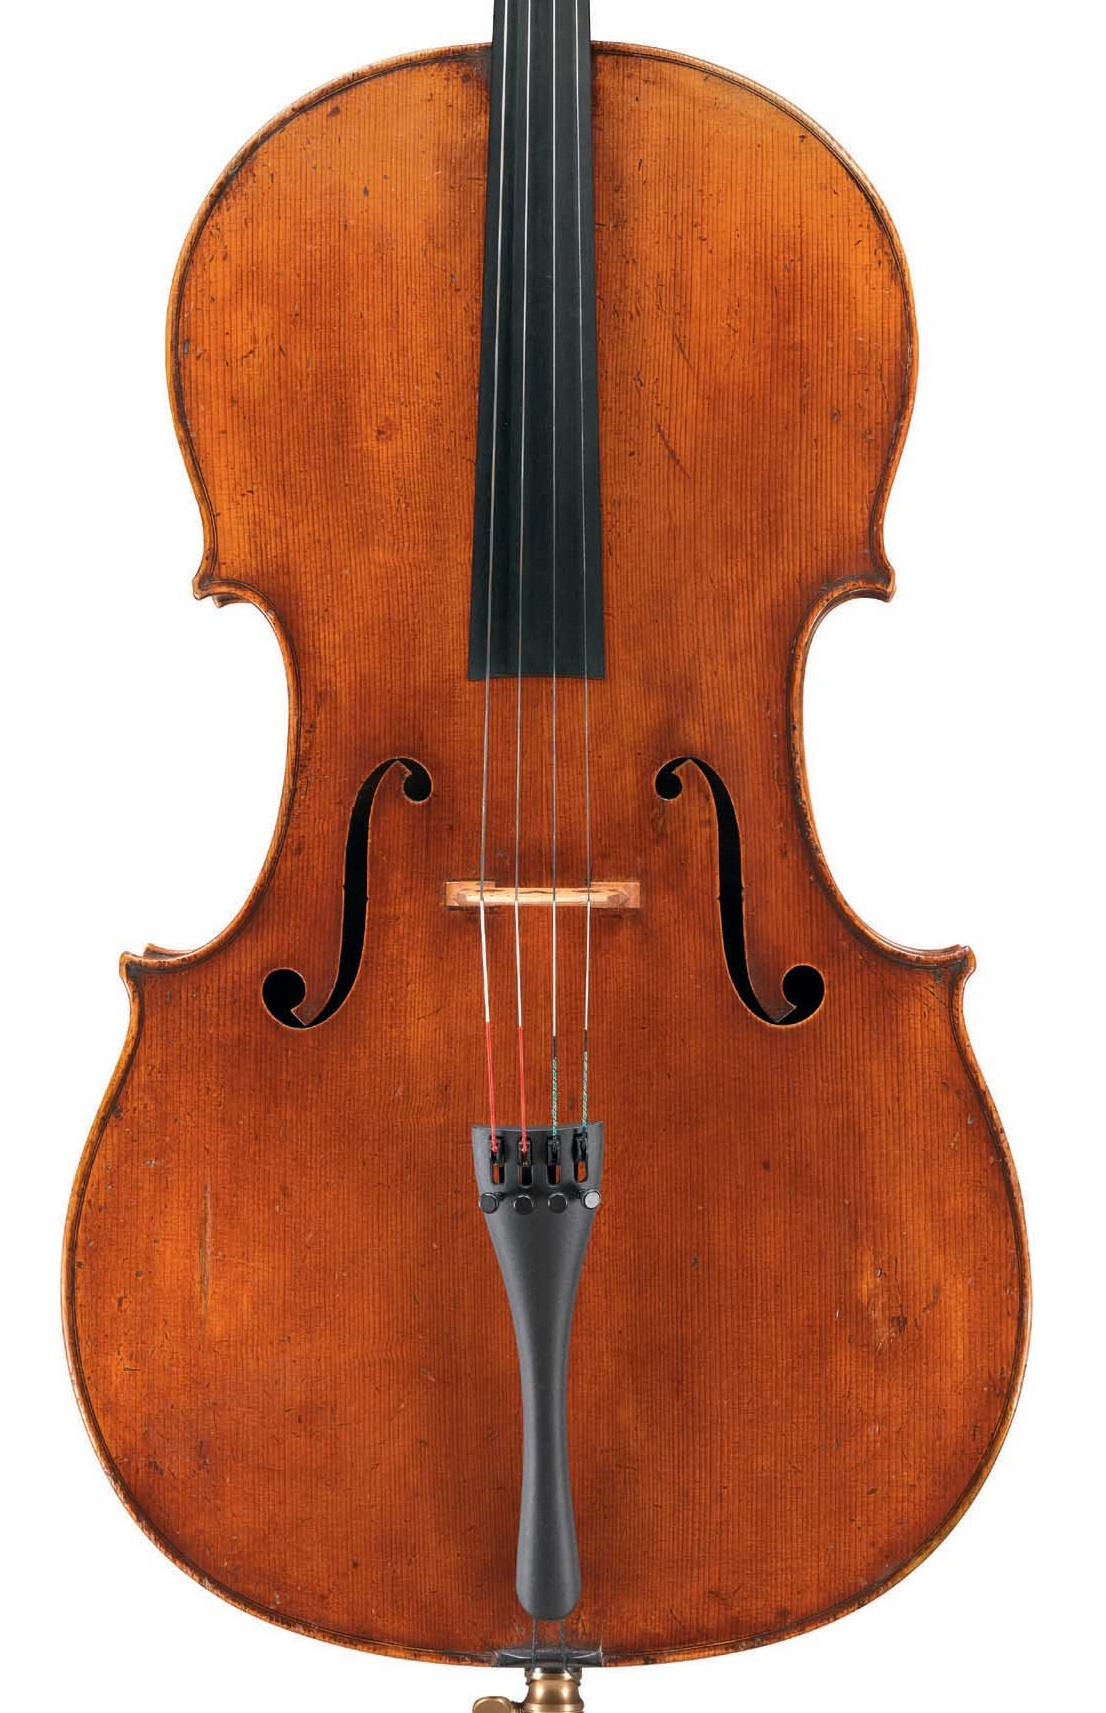 Front of cello by JB Vuillaume, ex-Sheremetev, dated 1865, exhibited by Ingles & Hayday at Sotheby's in 2012